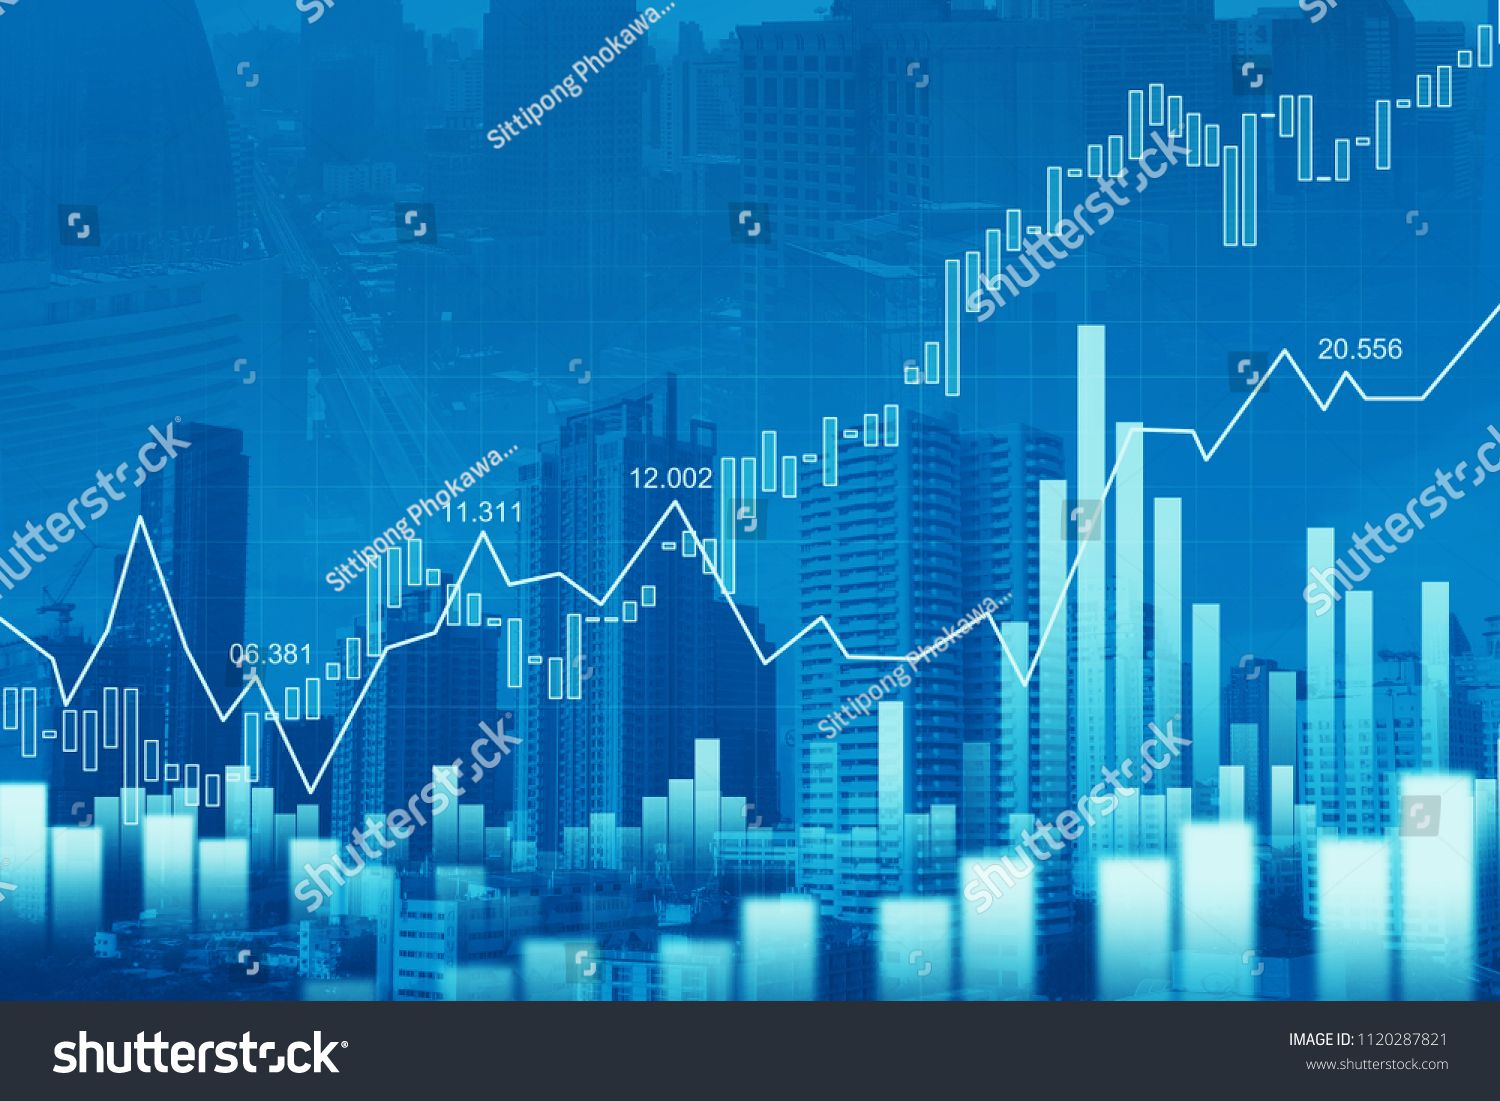 Stock market or forex trading graph in graphic double